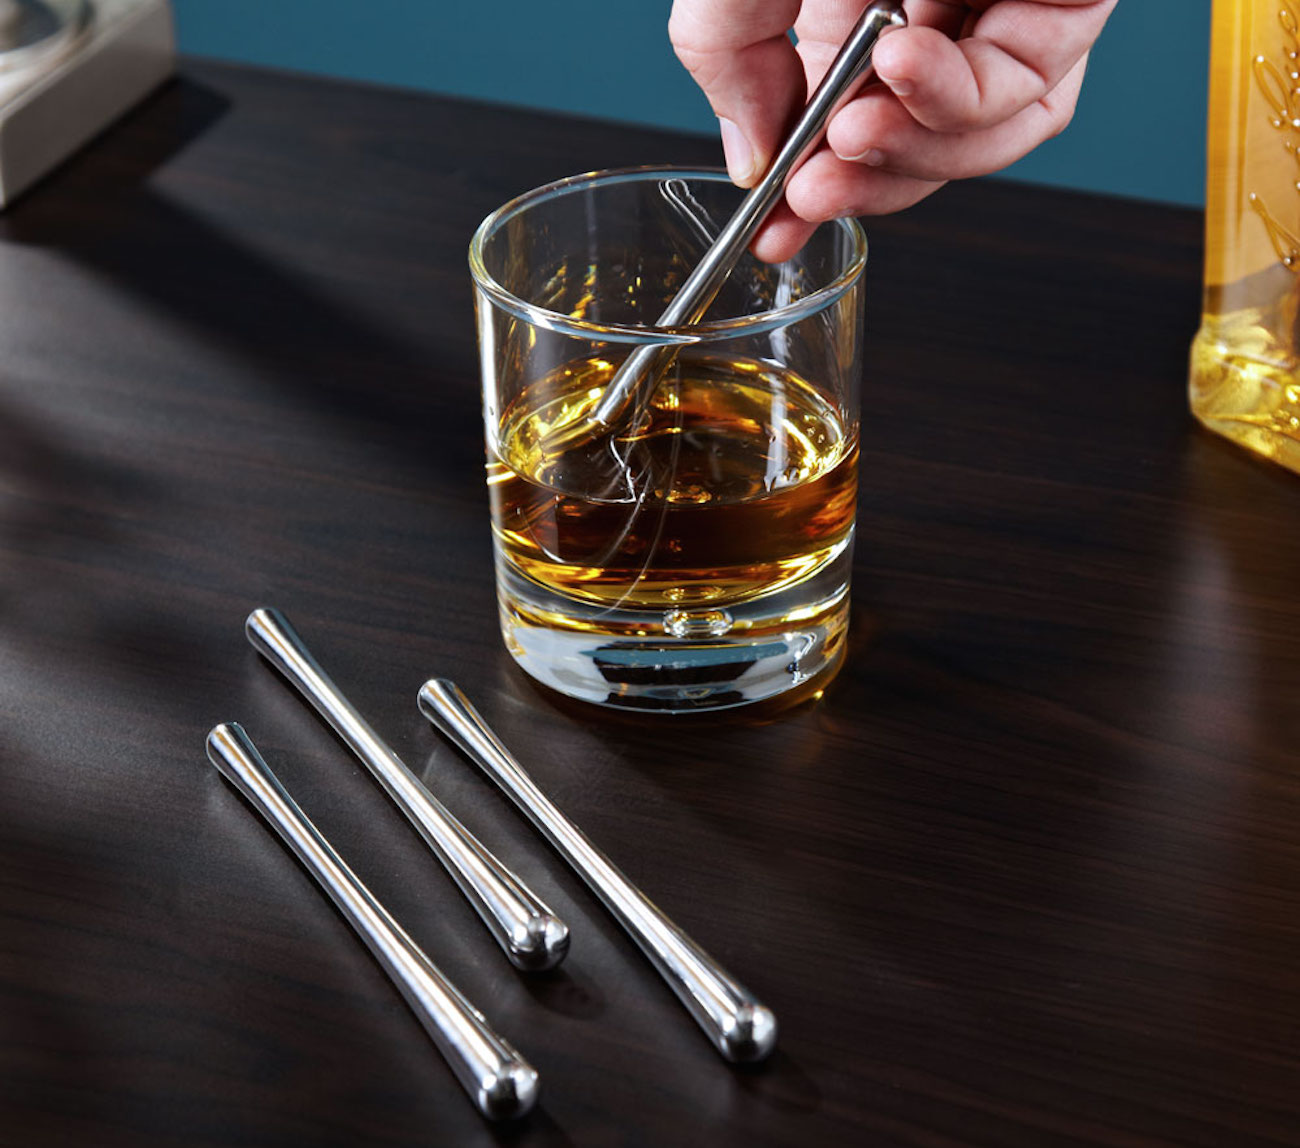 Swizzlecicles – Freezer Gel Filled Sticks to Cool Your Drink